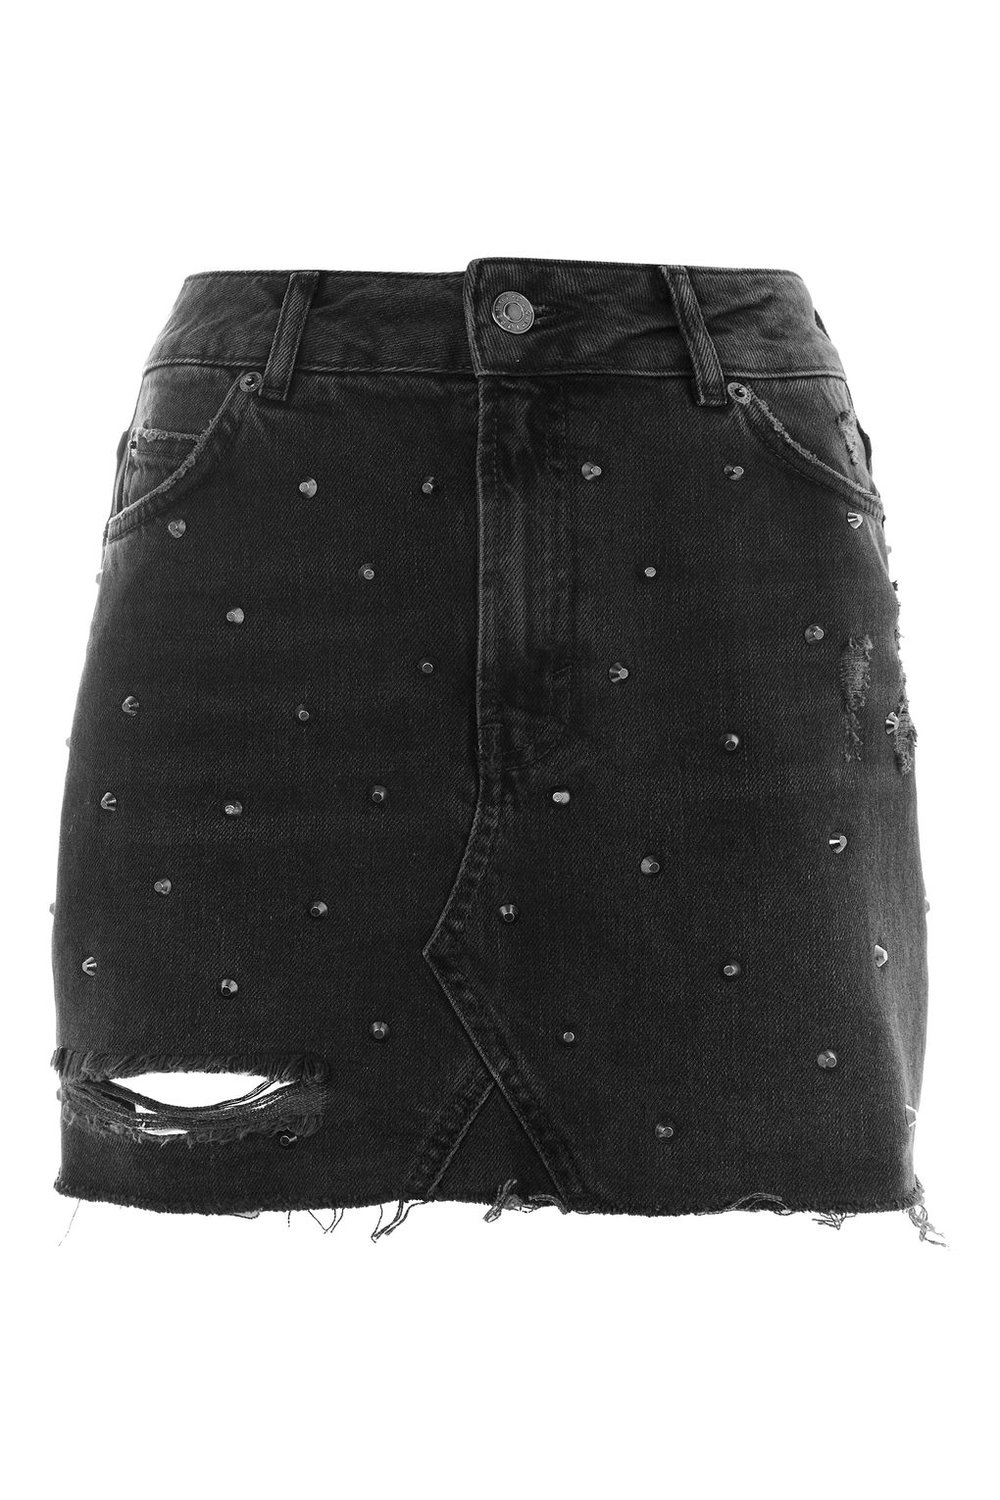 4d52d7aaef Topshop Button Down Denim Skirt